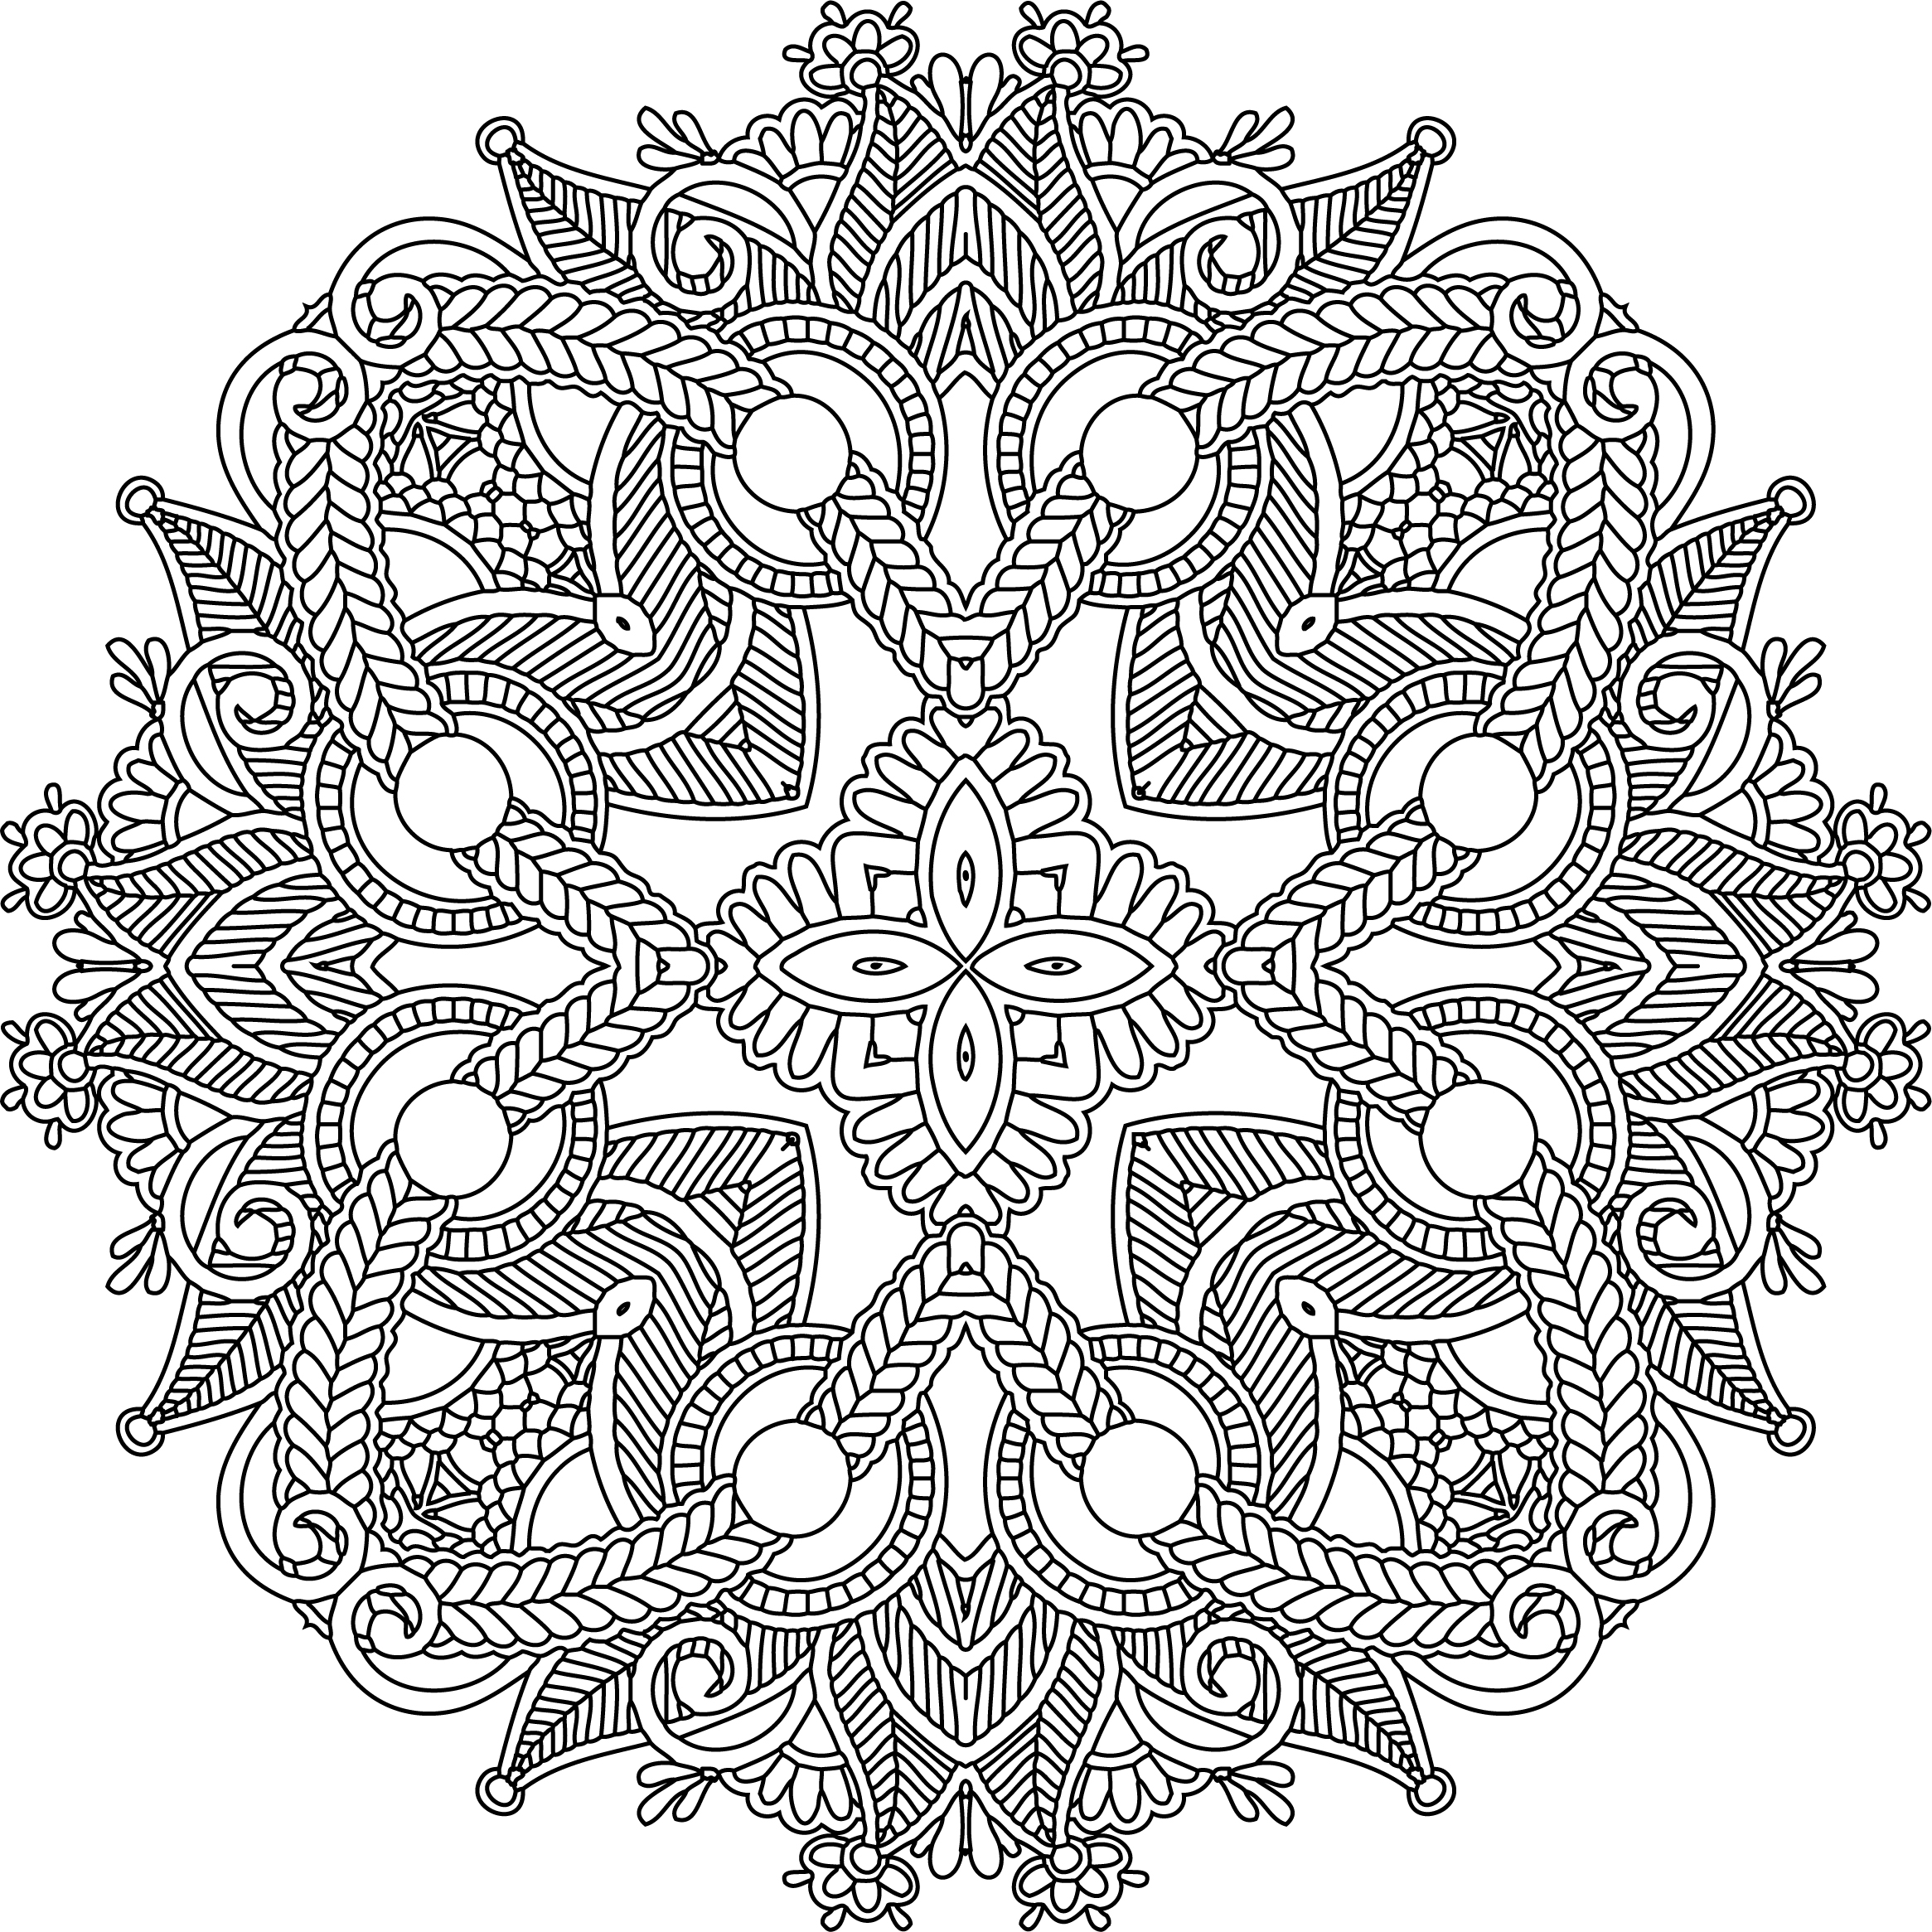 Line Drawing Mandala : Line art mandala by e designer on deviantart